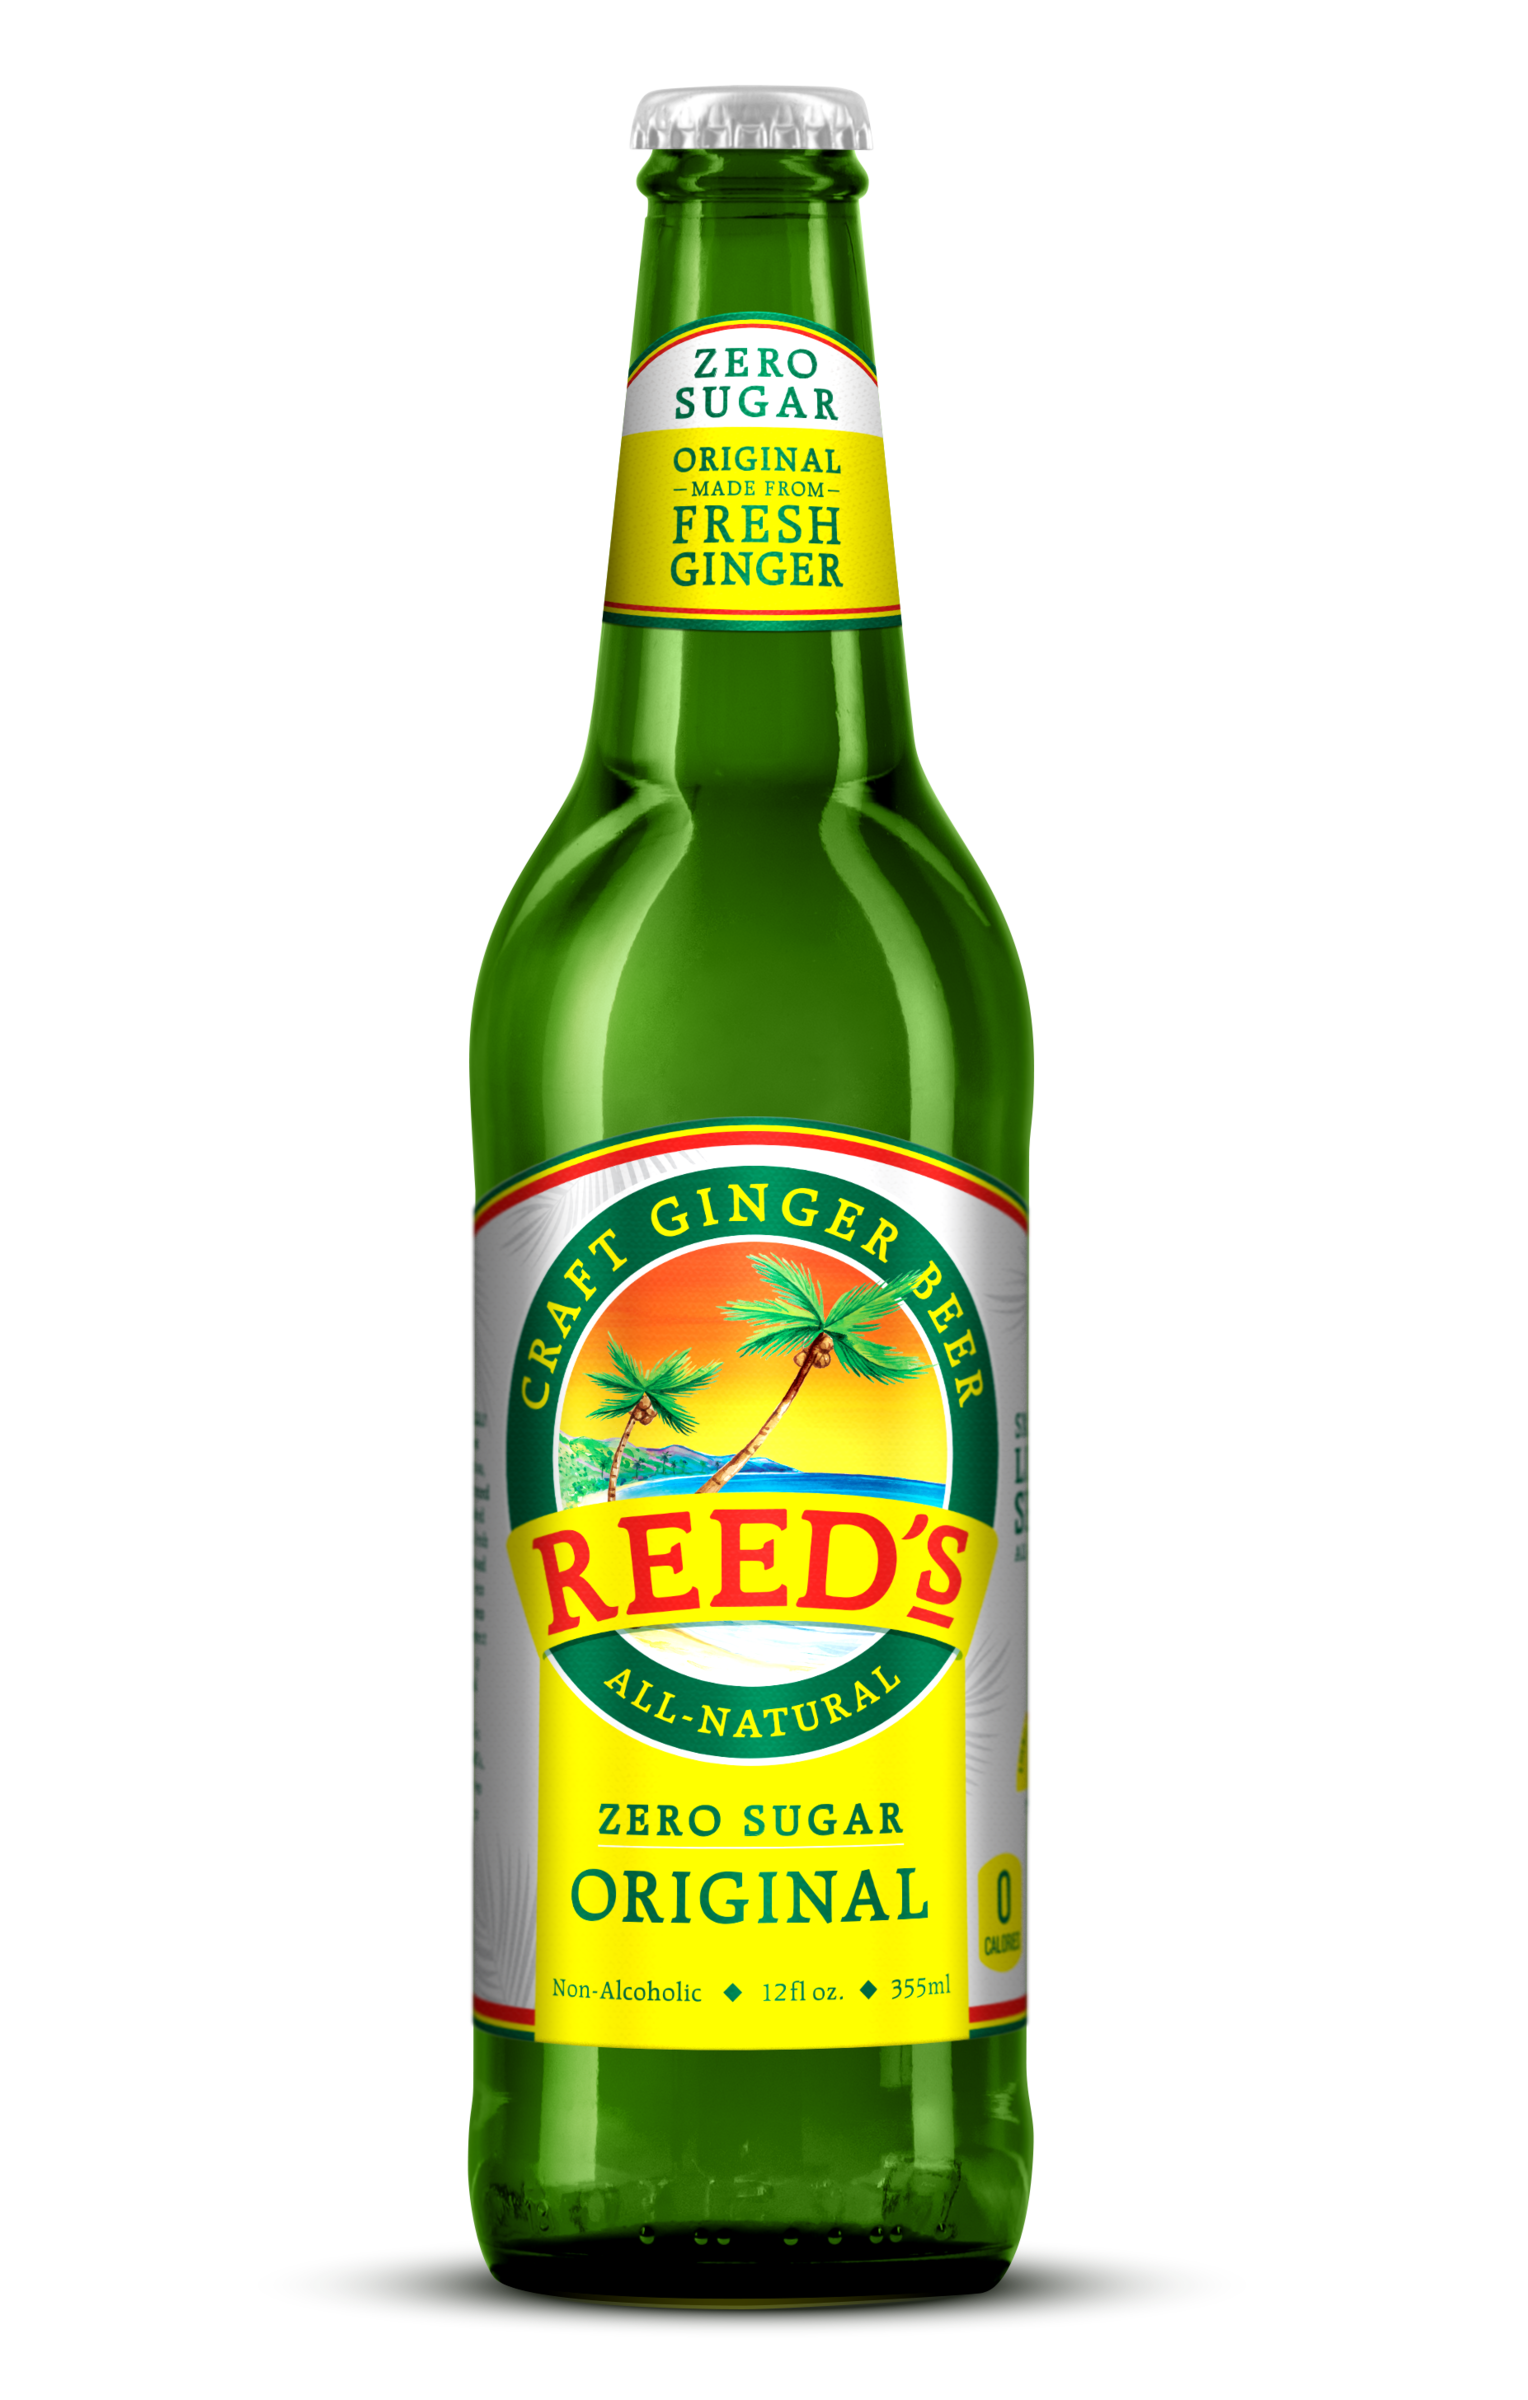 Products - Reed's Brand Site